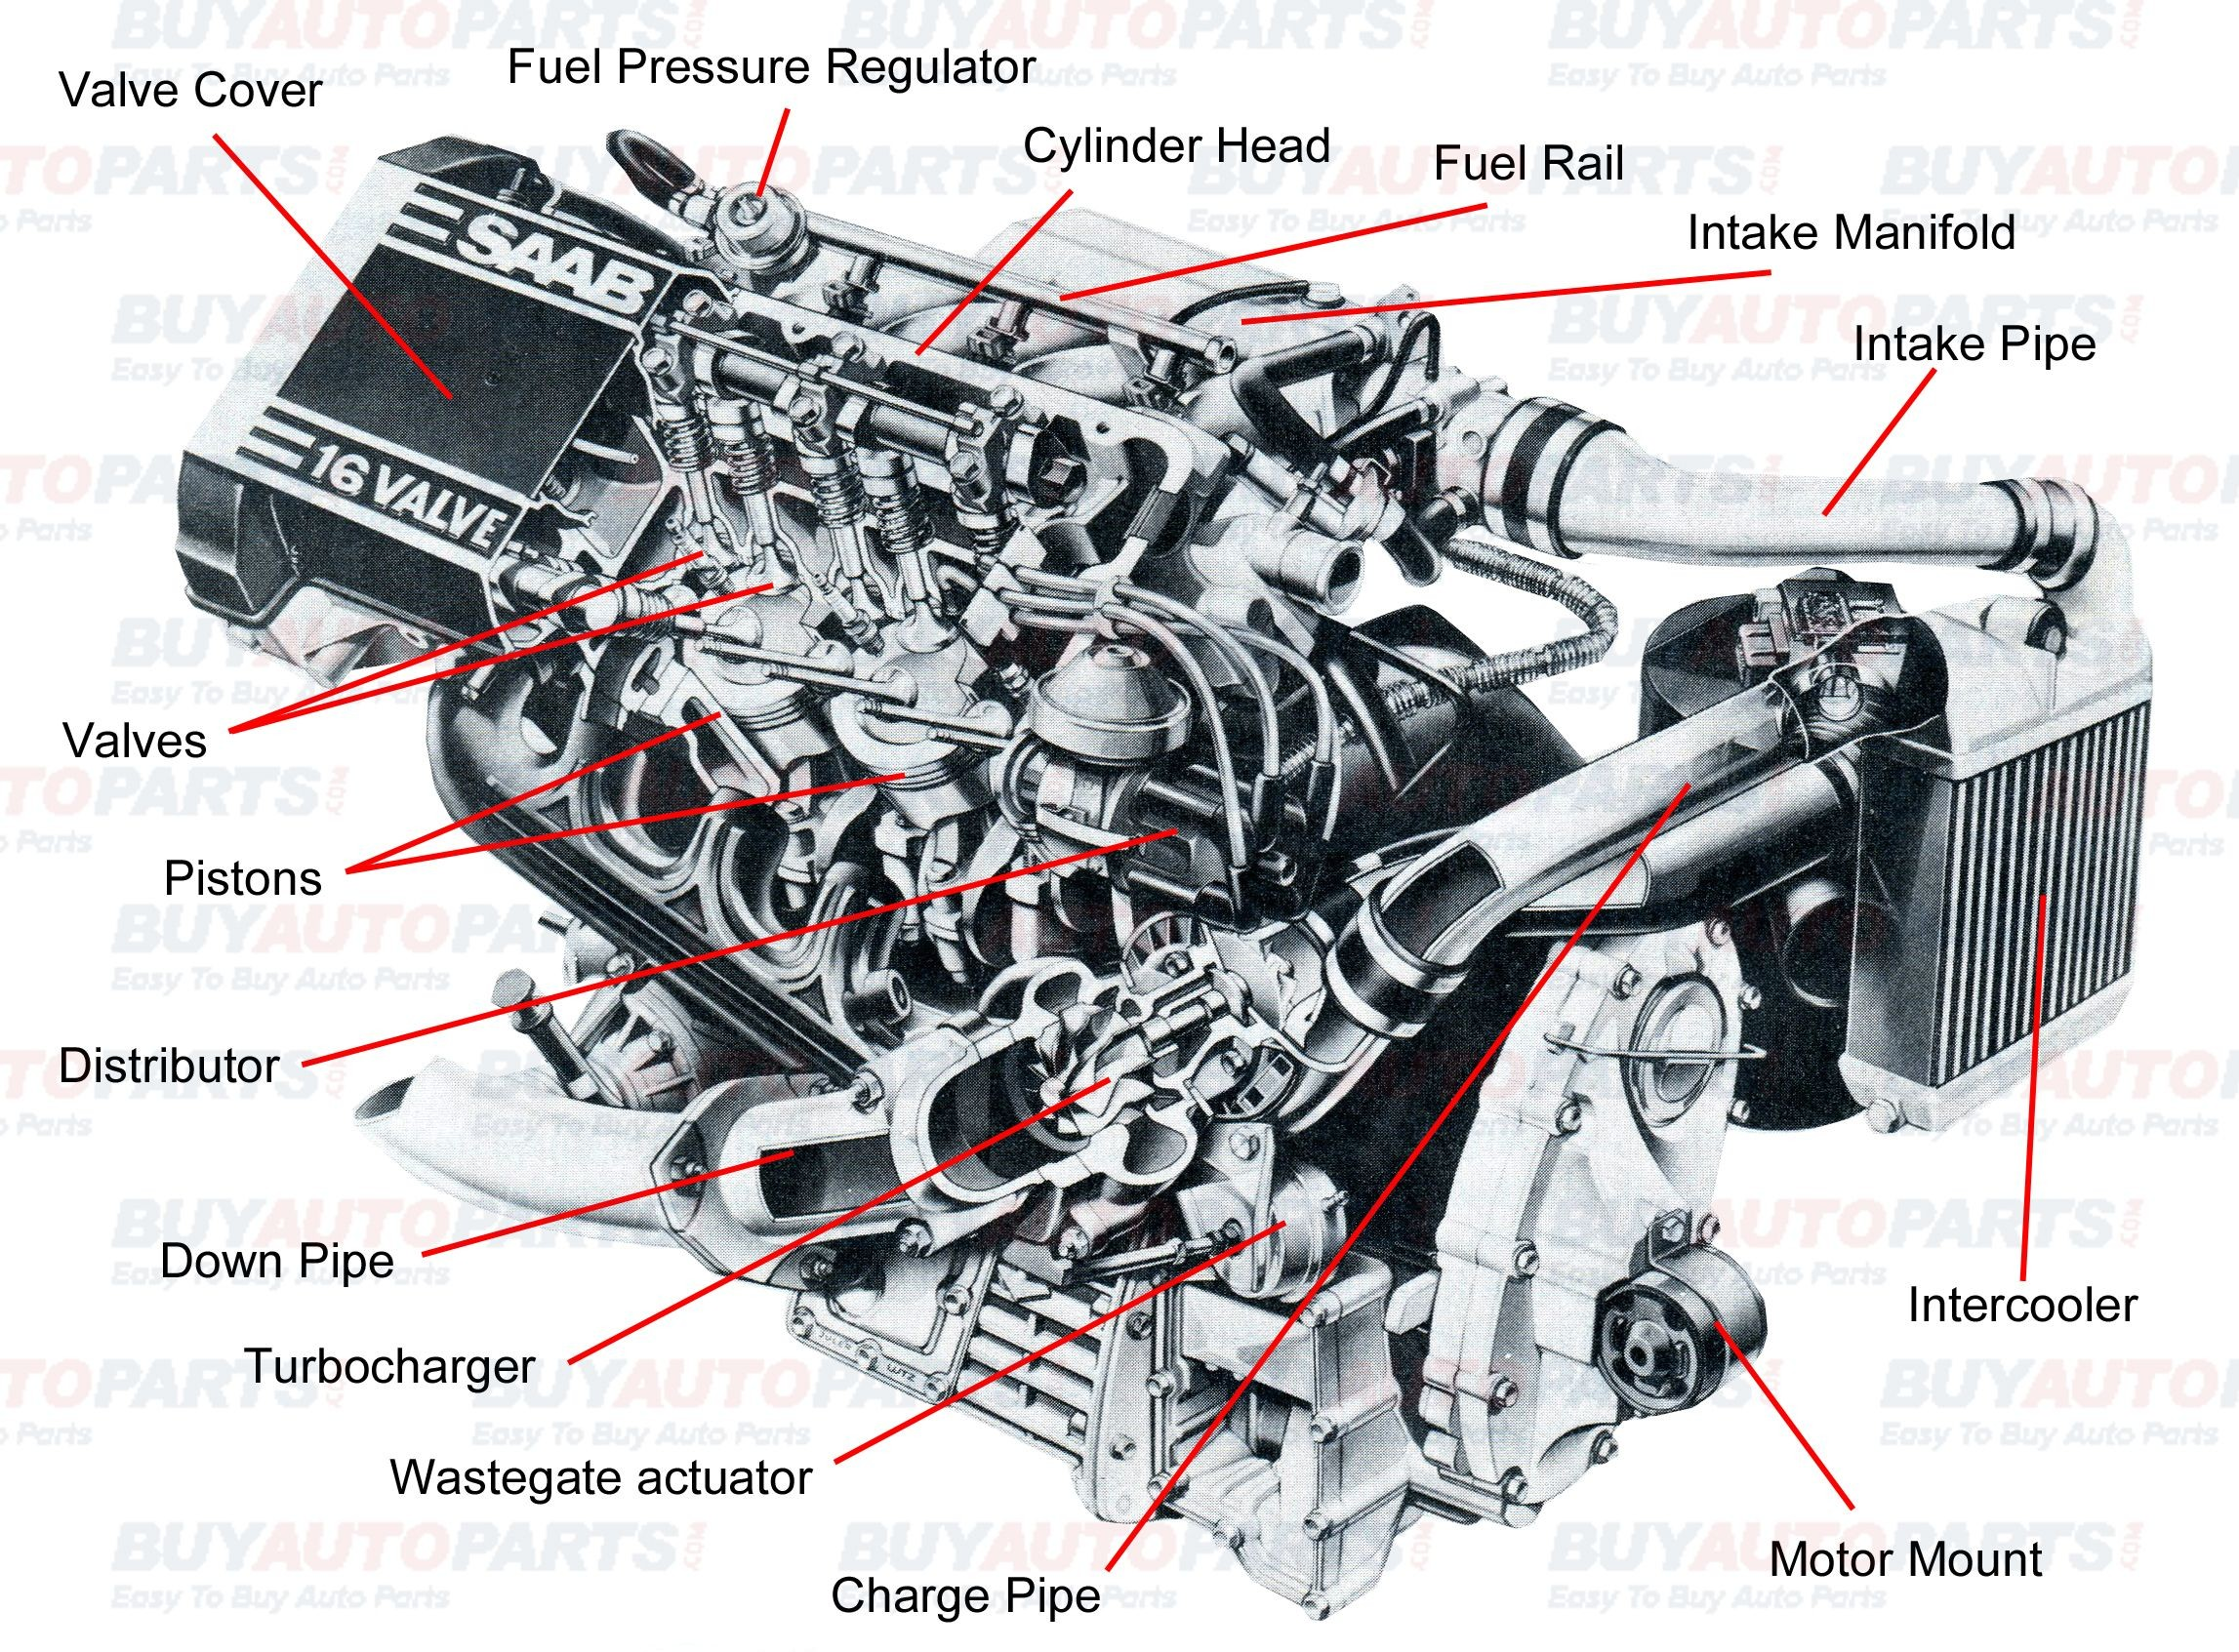 Motorcycle Parts Names Diagram Pin by Jimmiejanet Testellamwfz On What Does An Engine with Of Motorcycle Parts Names Diagram